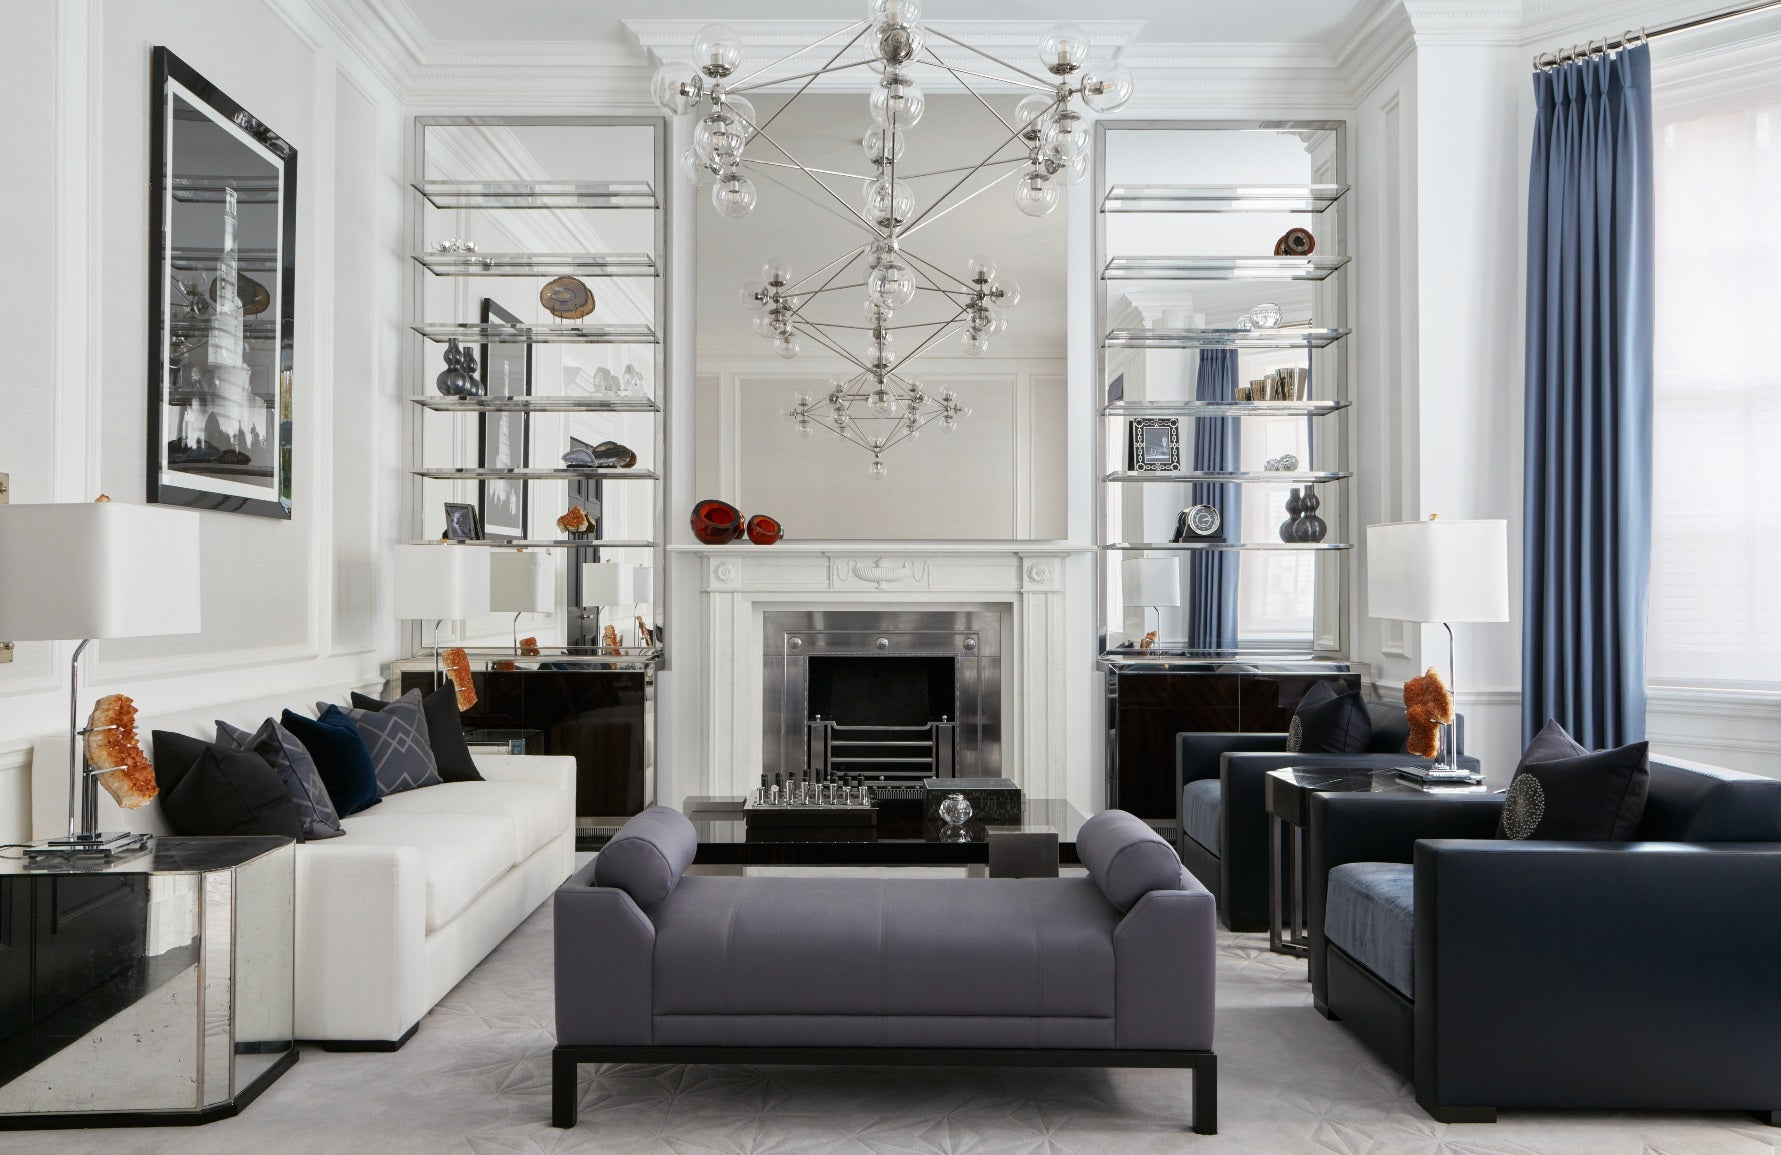 Living Room Lighting Ideas – Katherine Pooley Interiors – Read more on LuxDeco.com